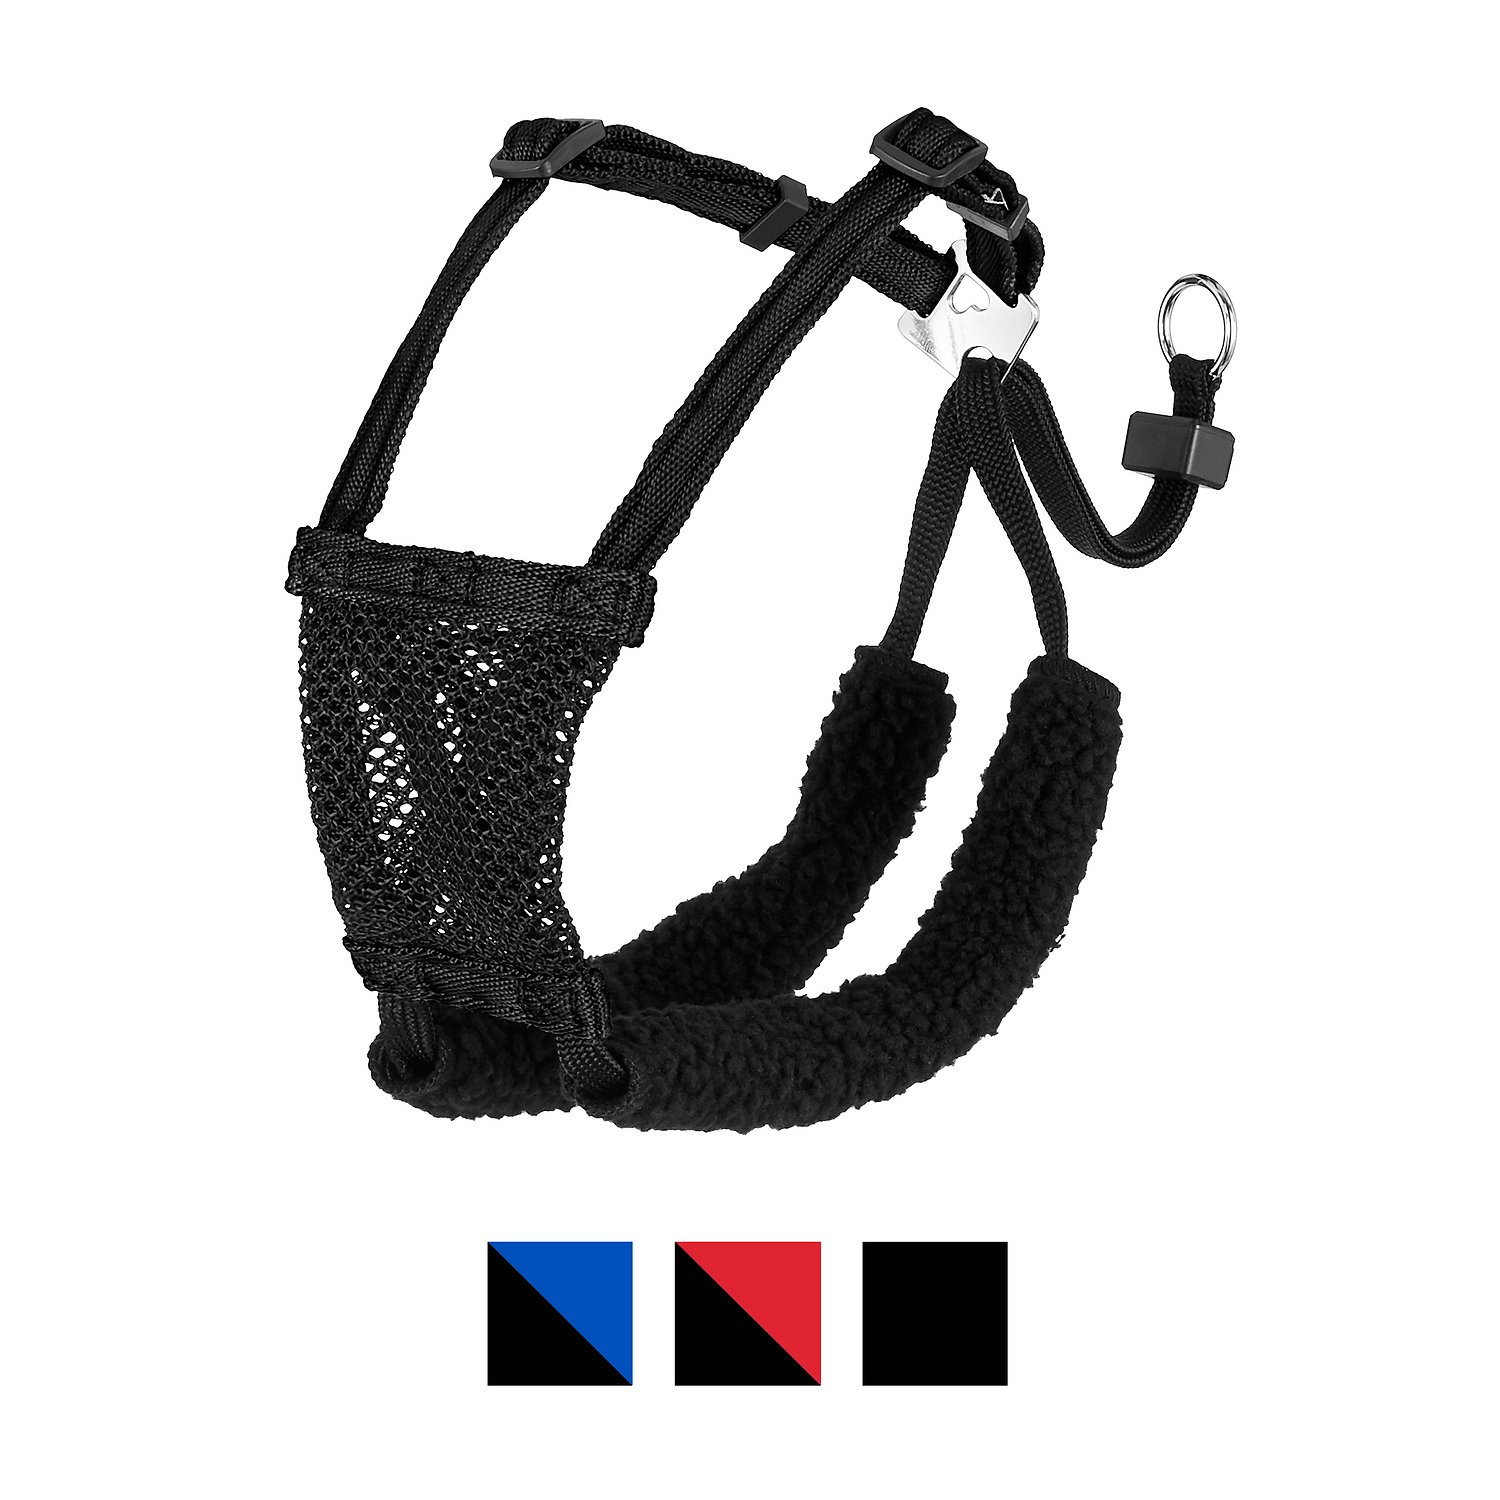 hight resolution of sporn non pull mesh dog harness